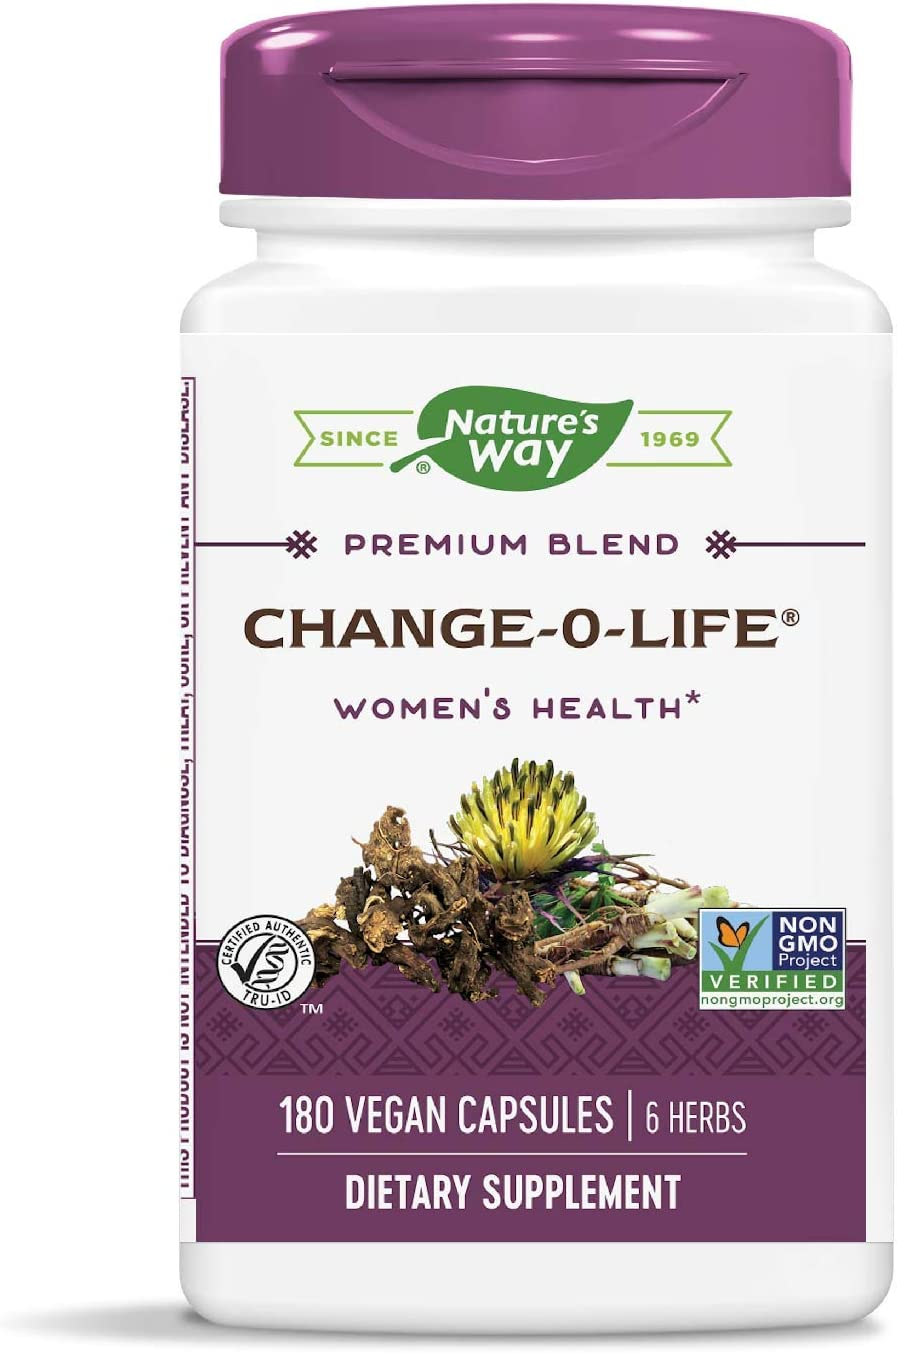 Nature's Way Change-O-Life Women's Health 7 Herb Blend, 180 Capsules